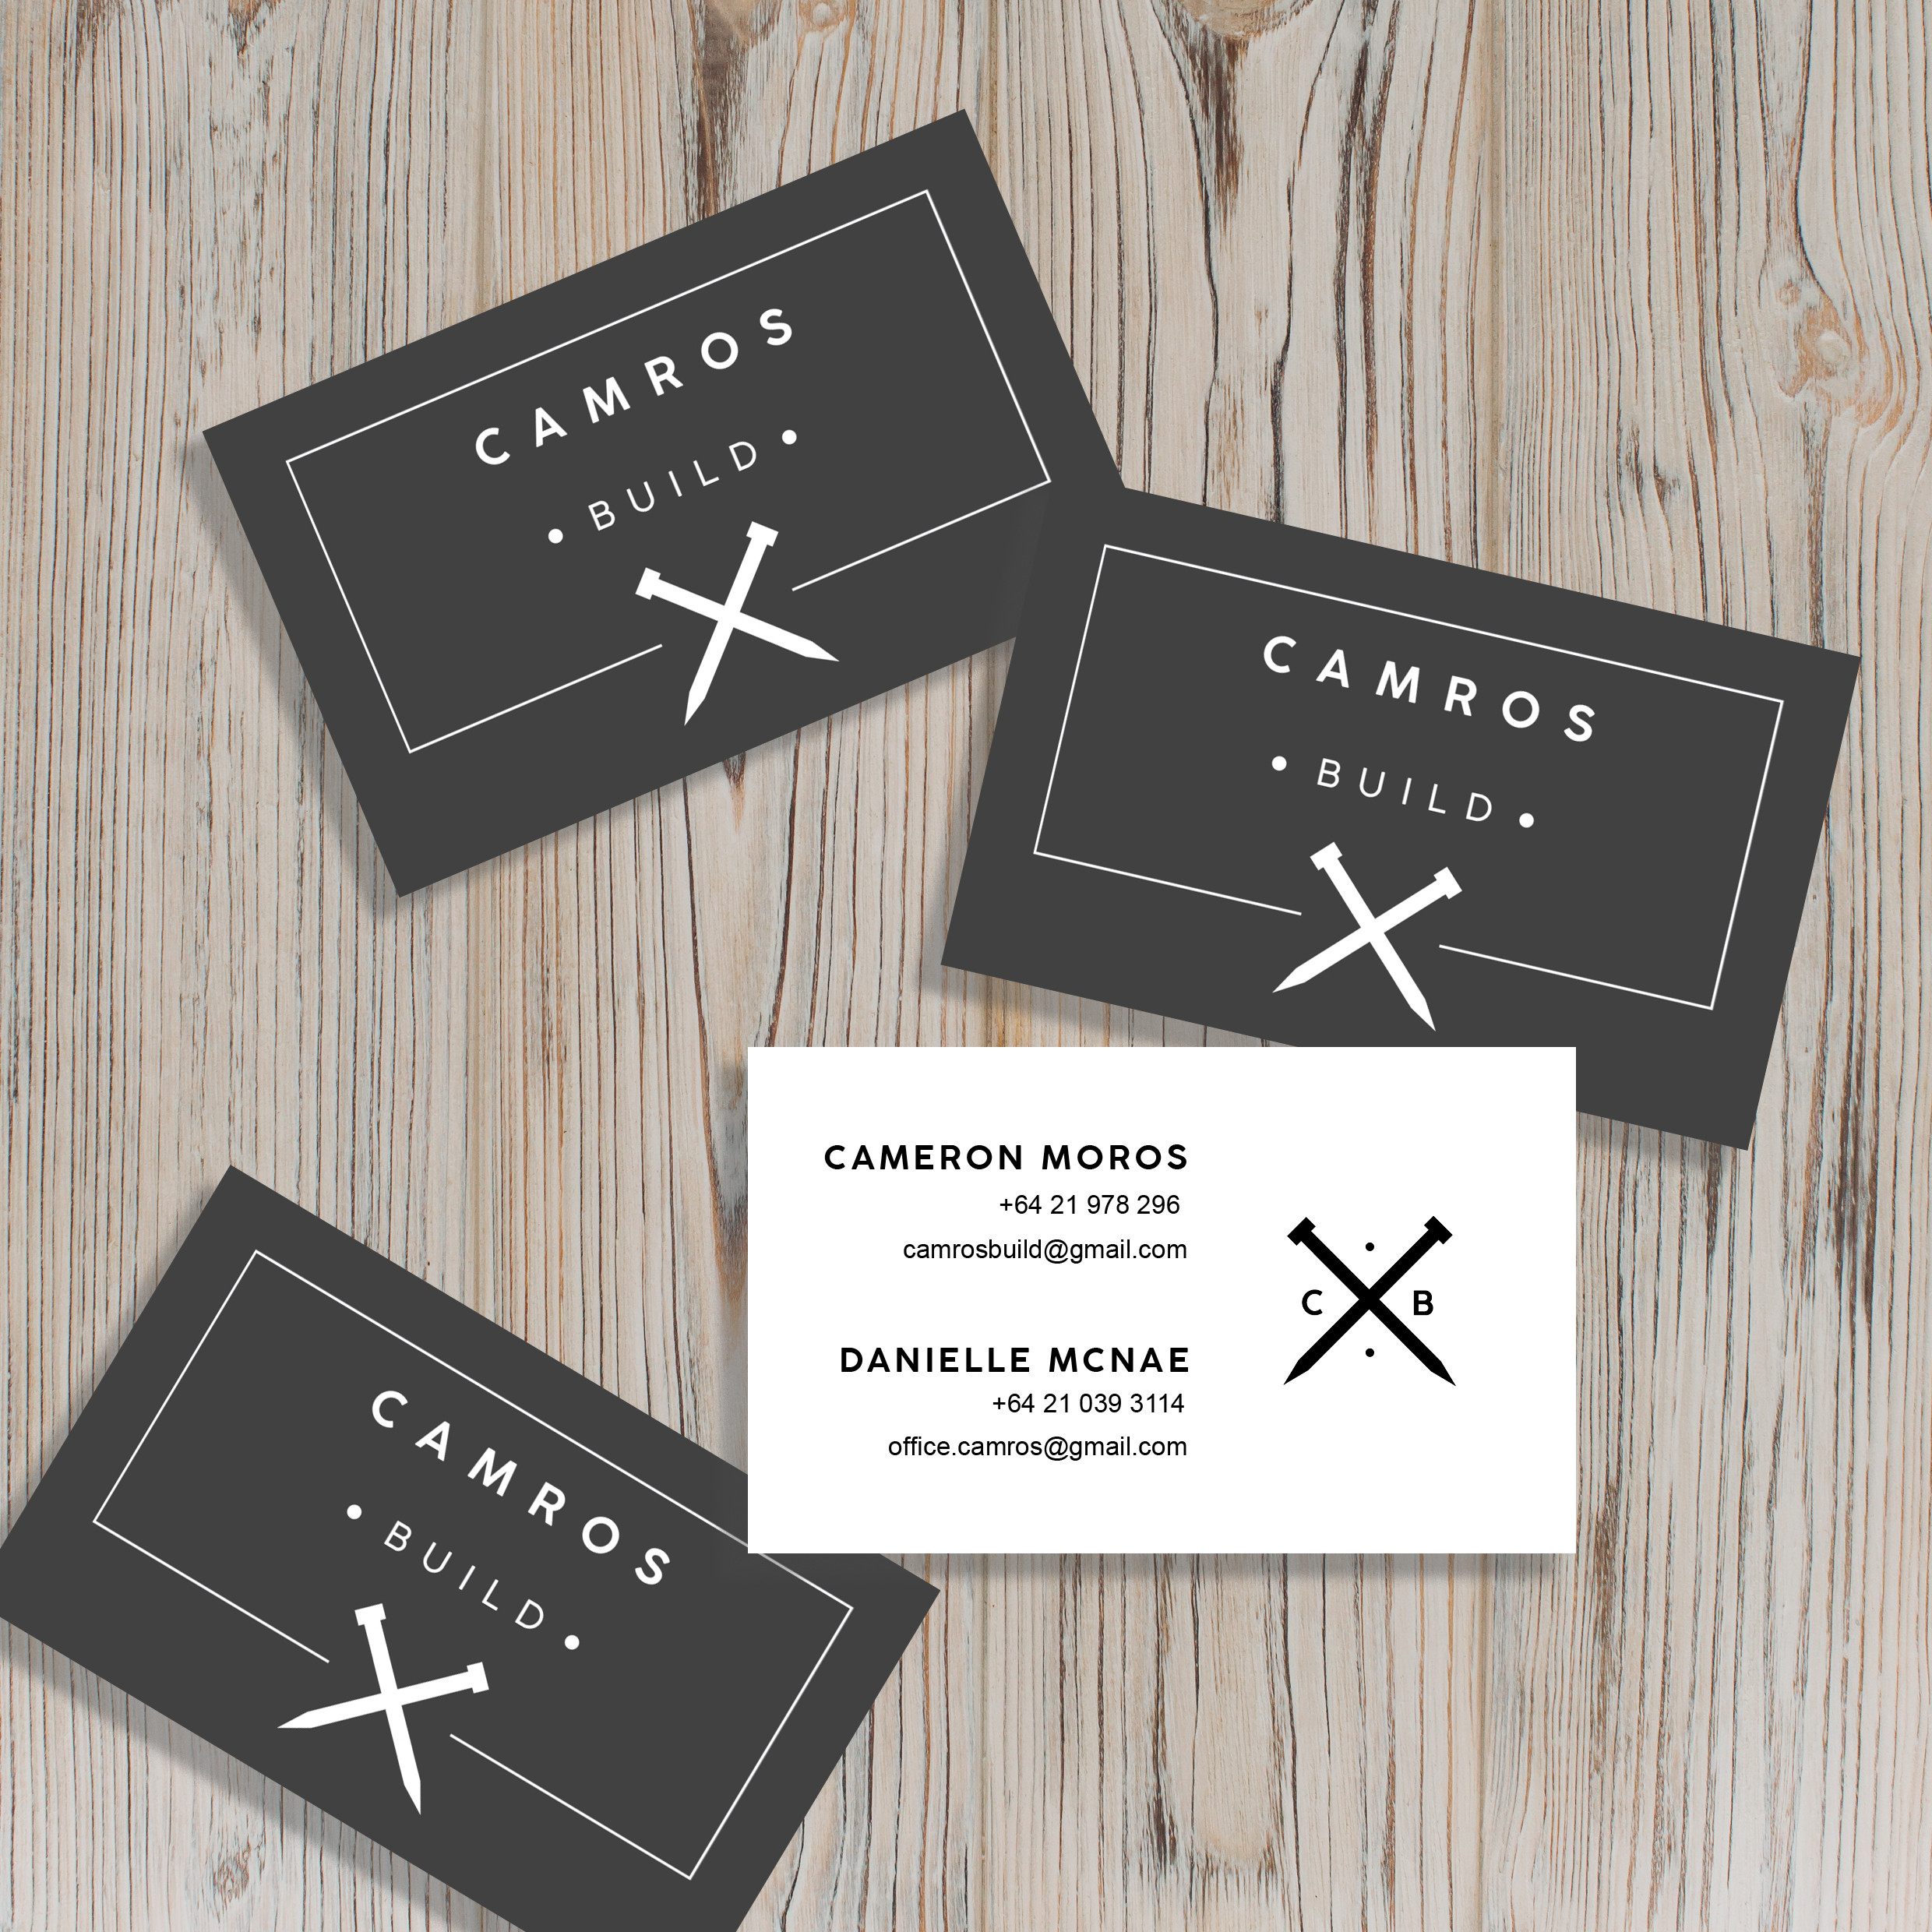 Business Card Design Auckland Image collections - Card Design And ...